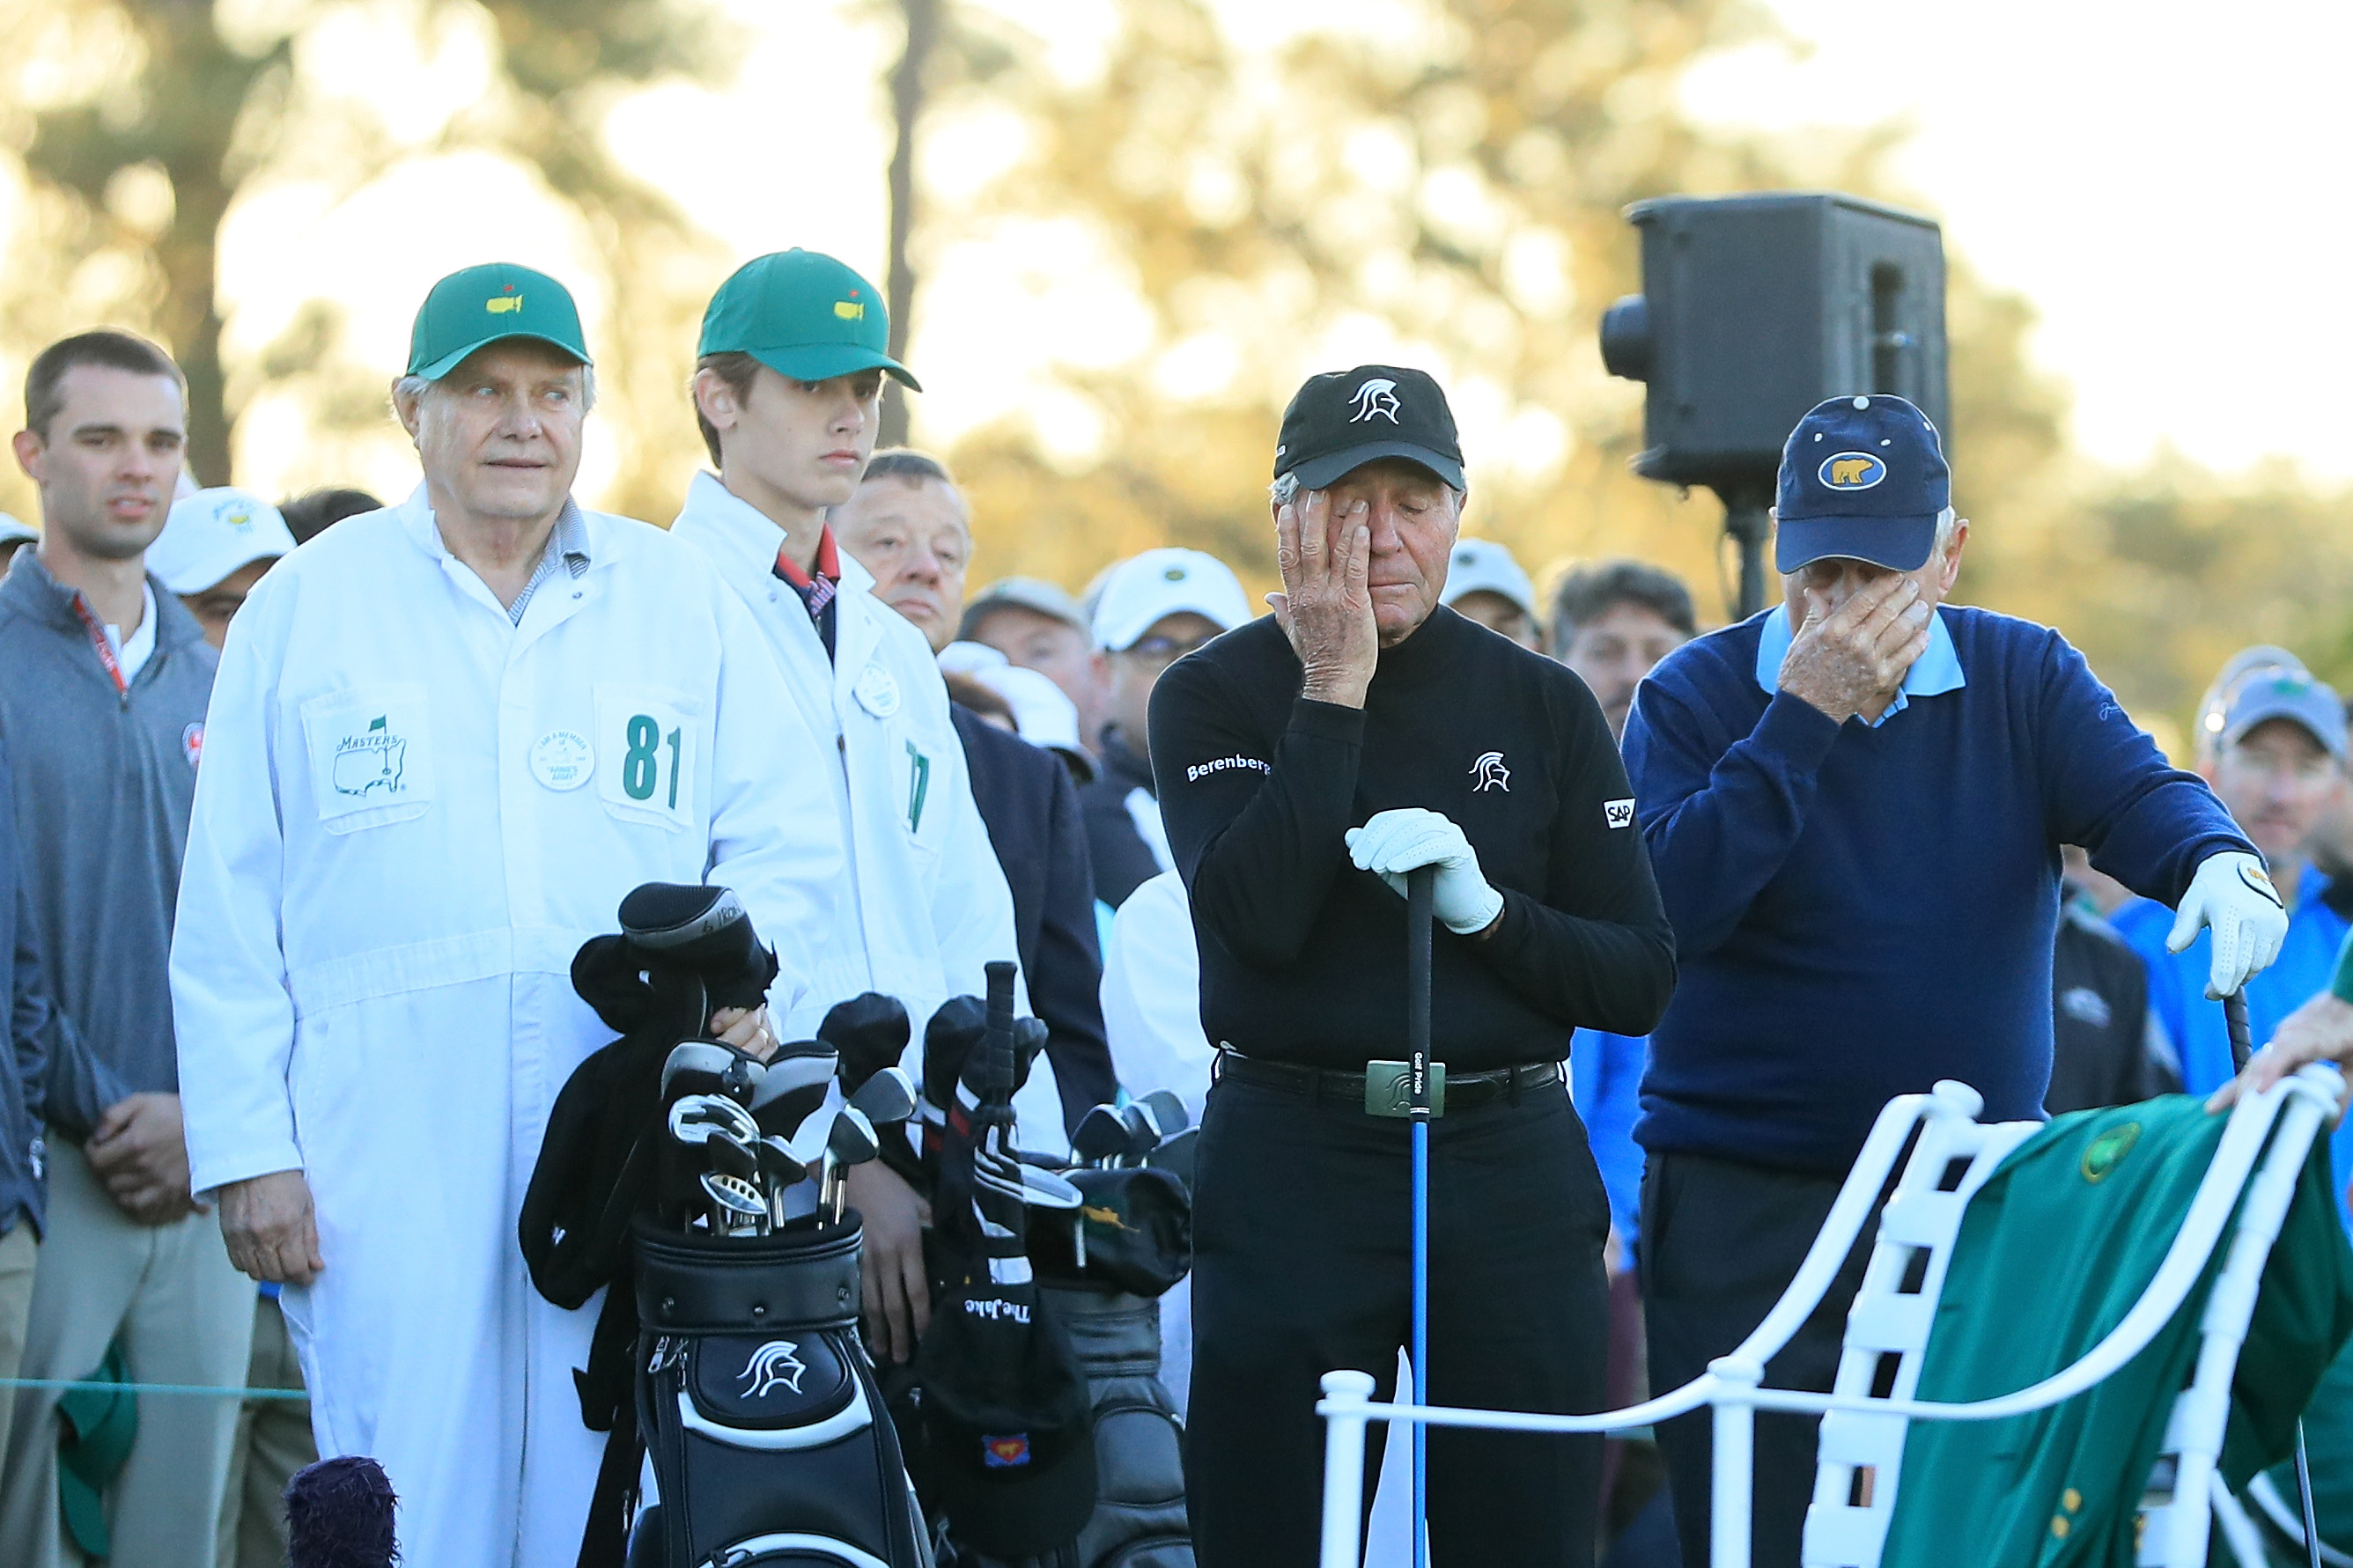 Player and Nicklaus showed plenty of emotion during the annual ceremony that kicks off the Masters.